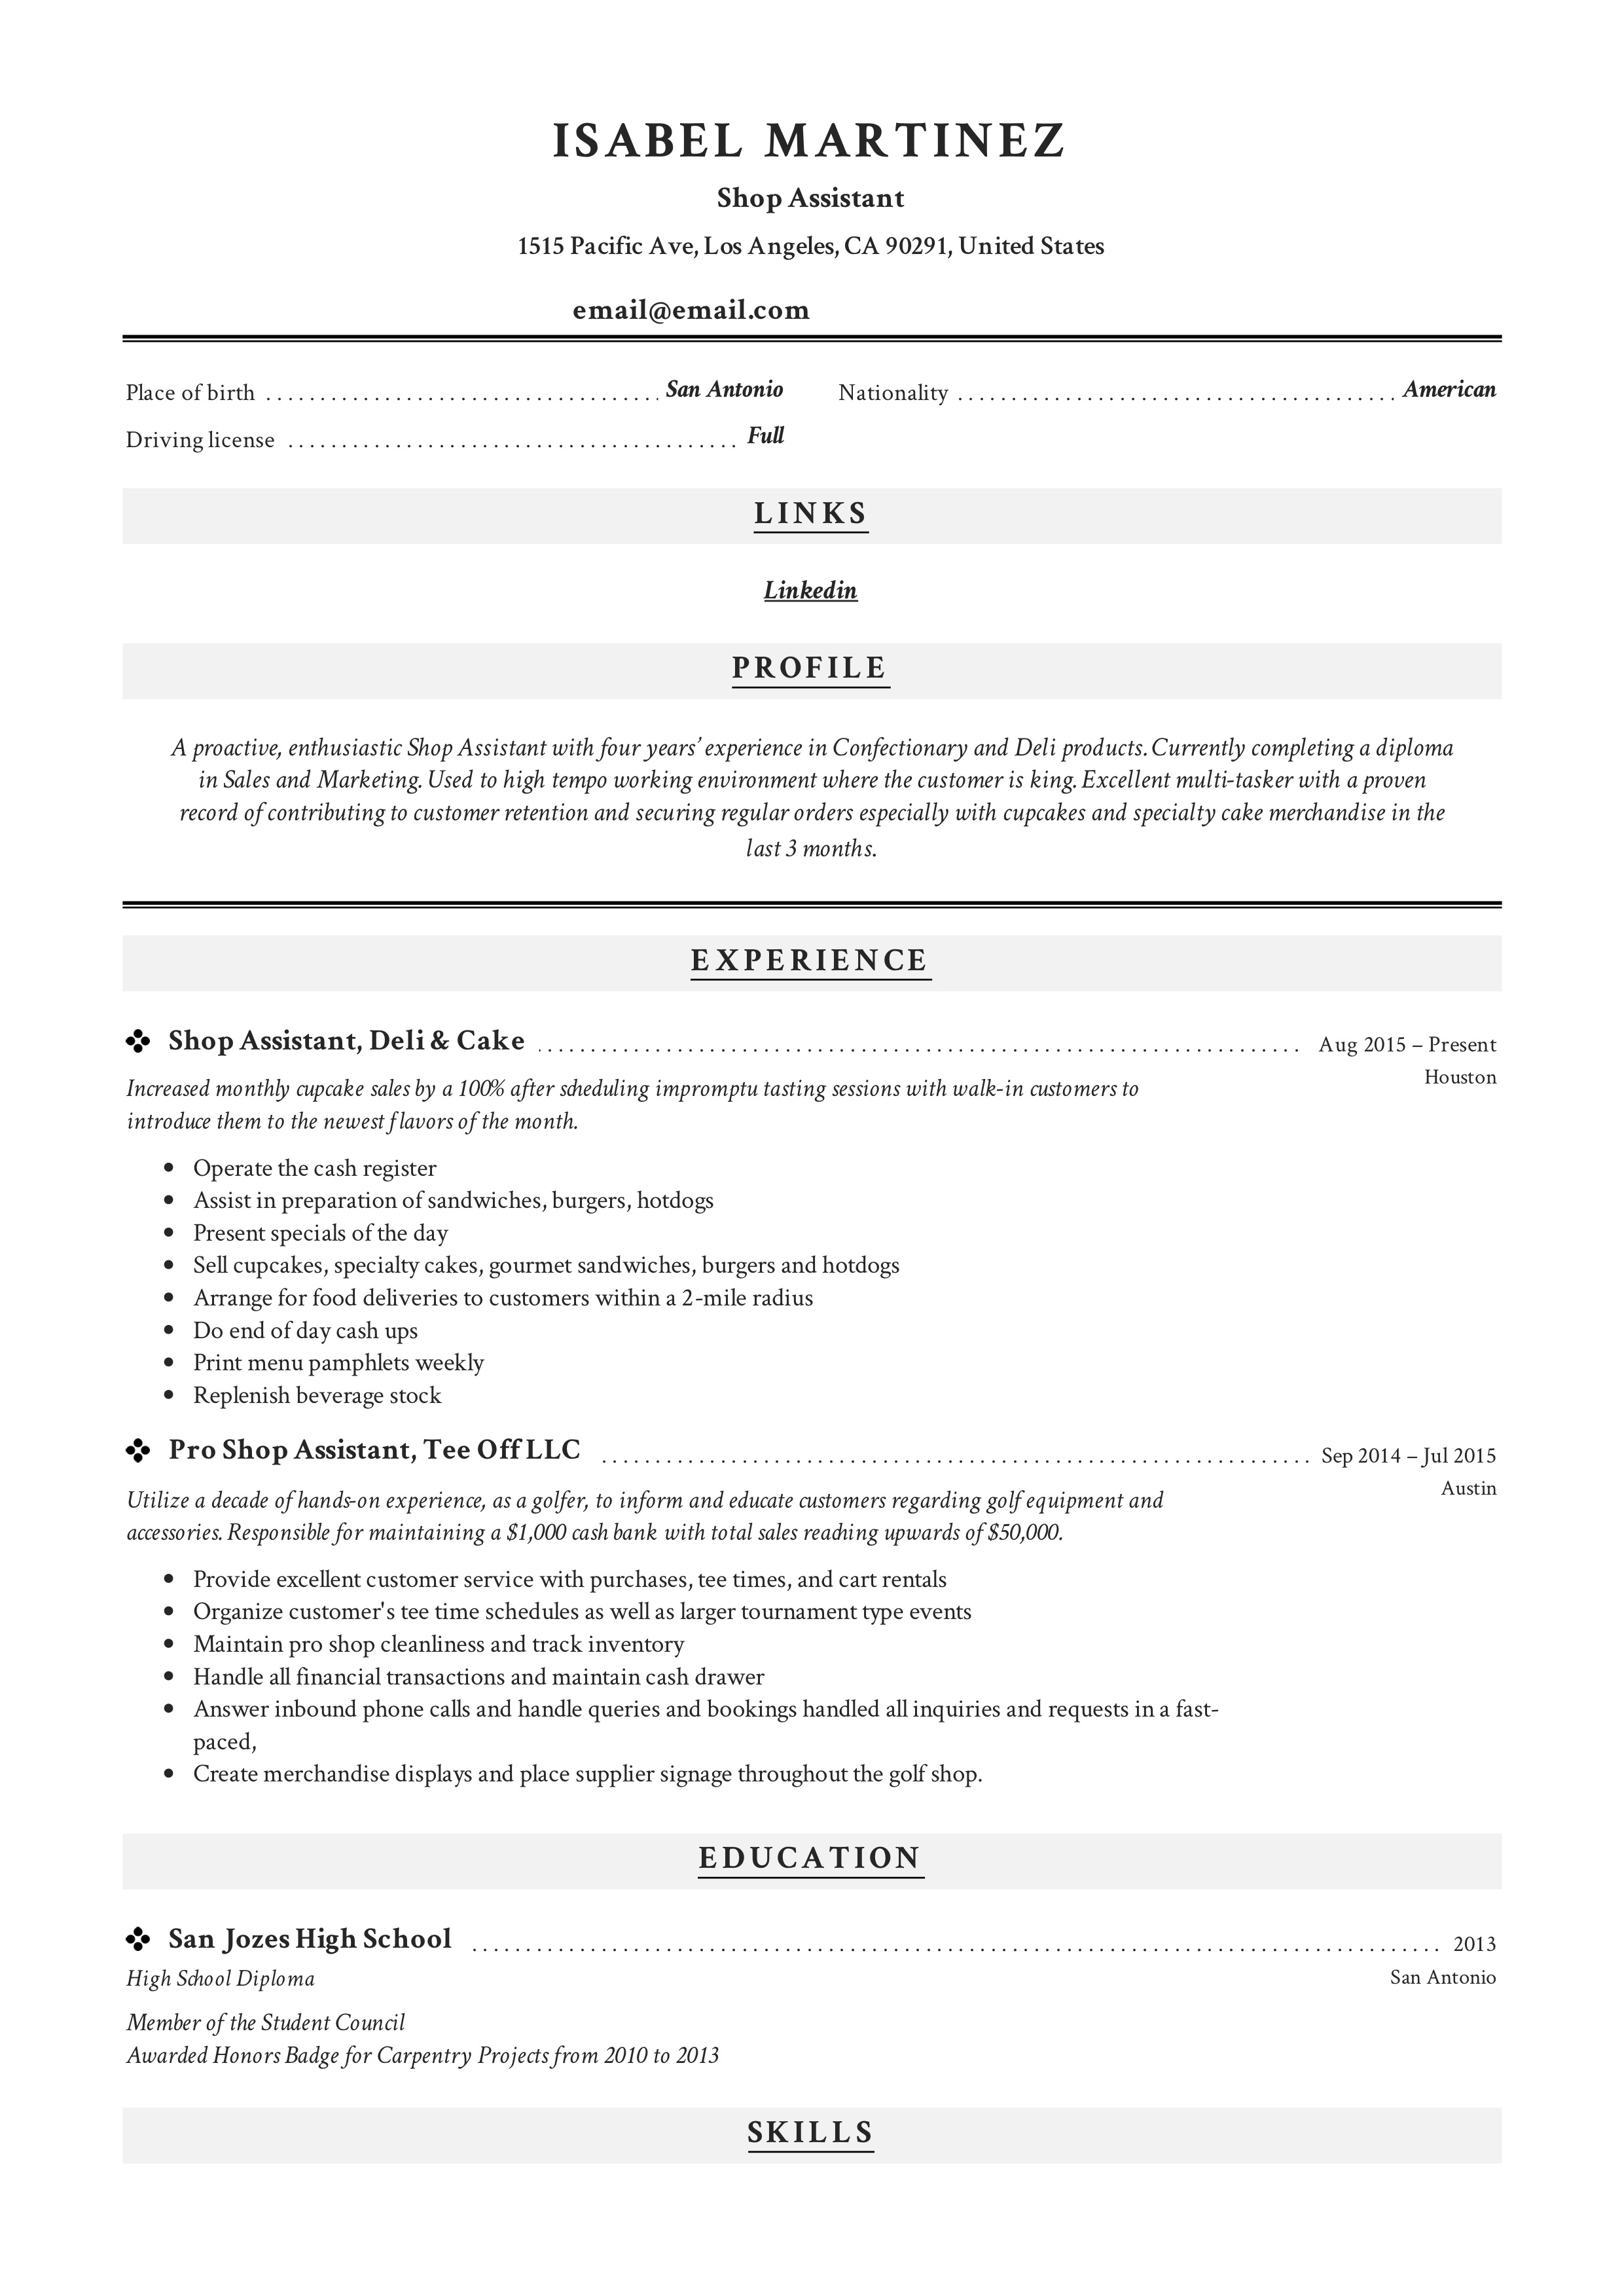 Modern and classic CV for Shop Assistants